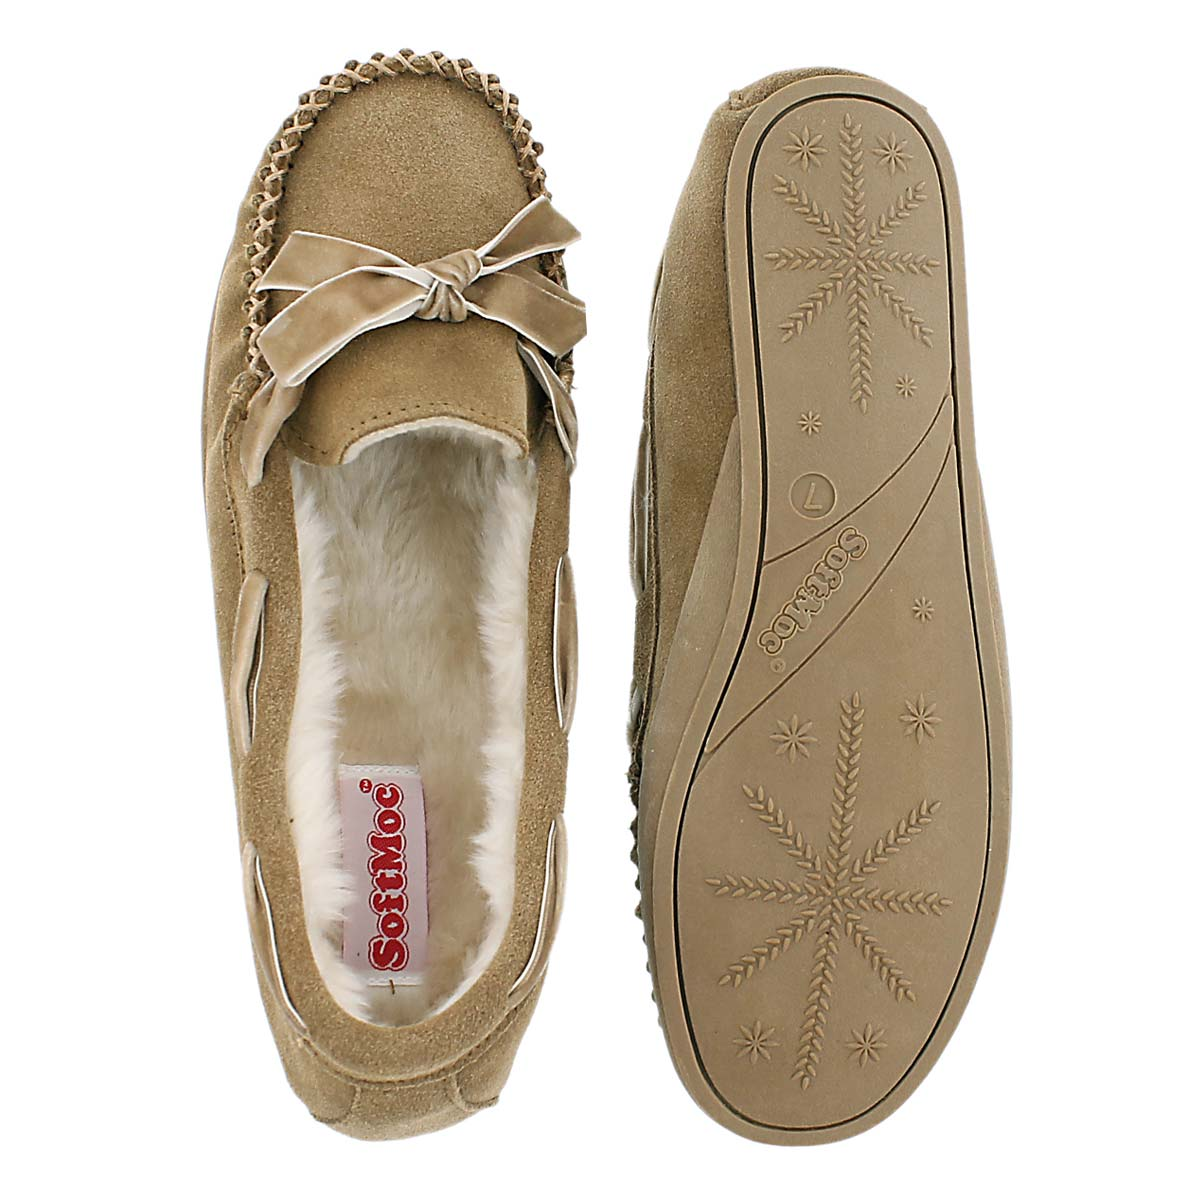 Lds Rochelle hshbrn suede moccasin